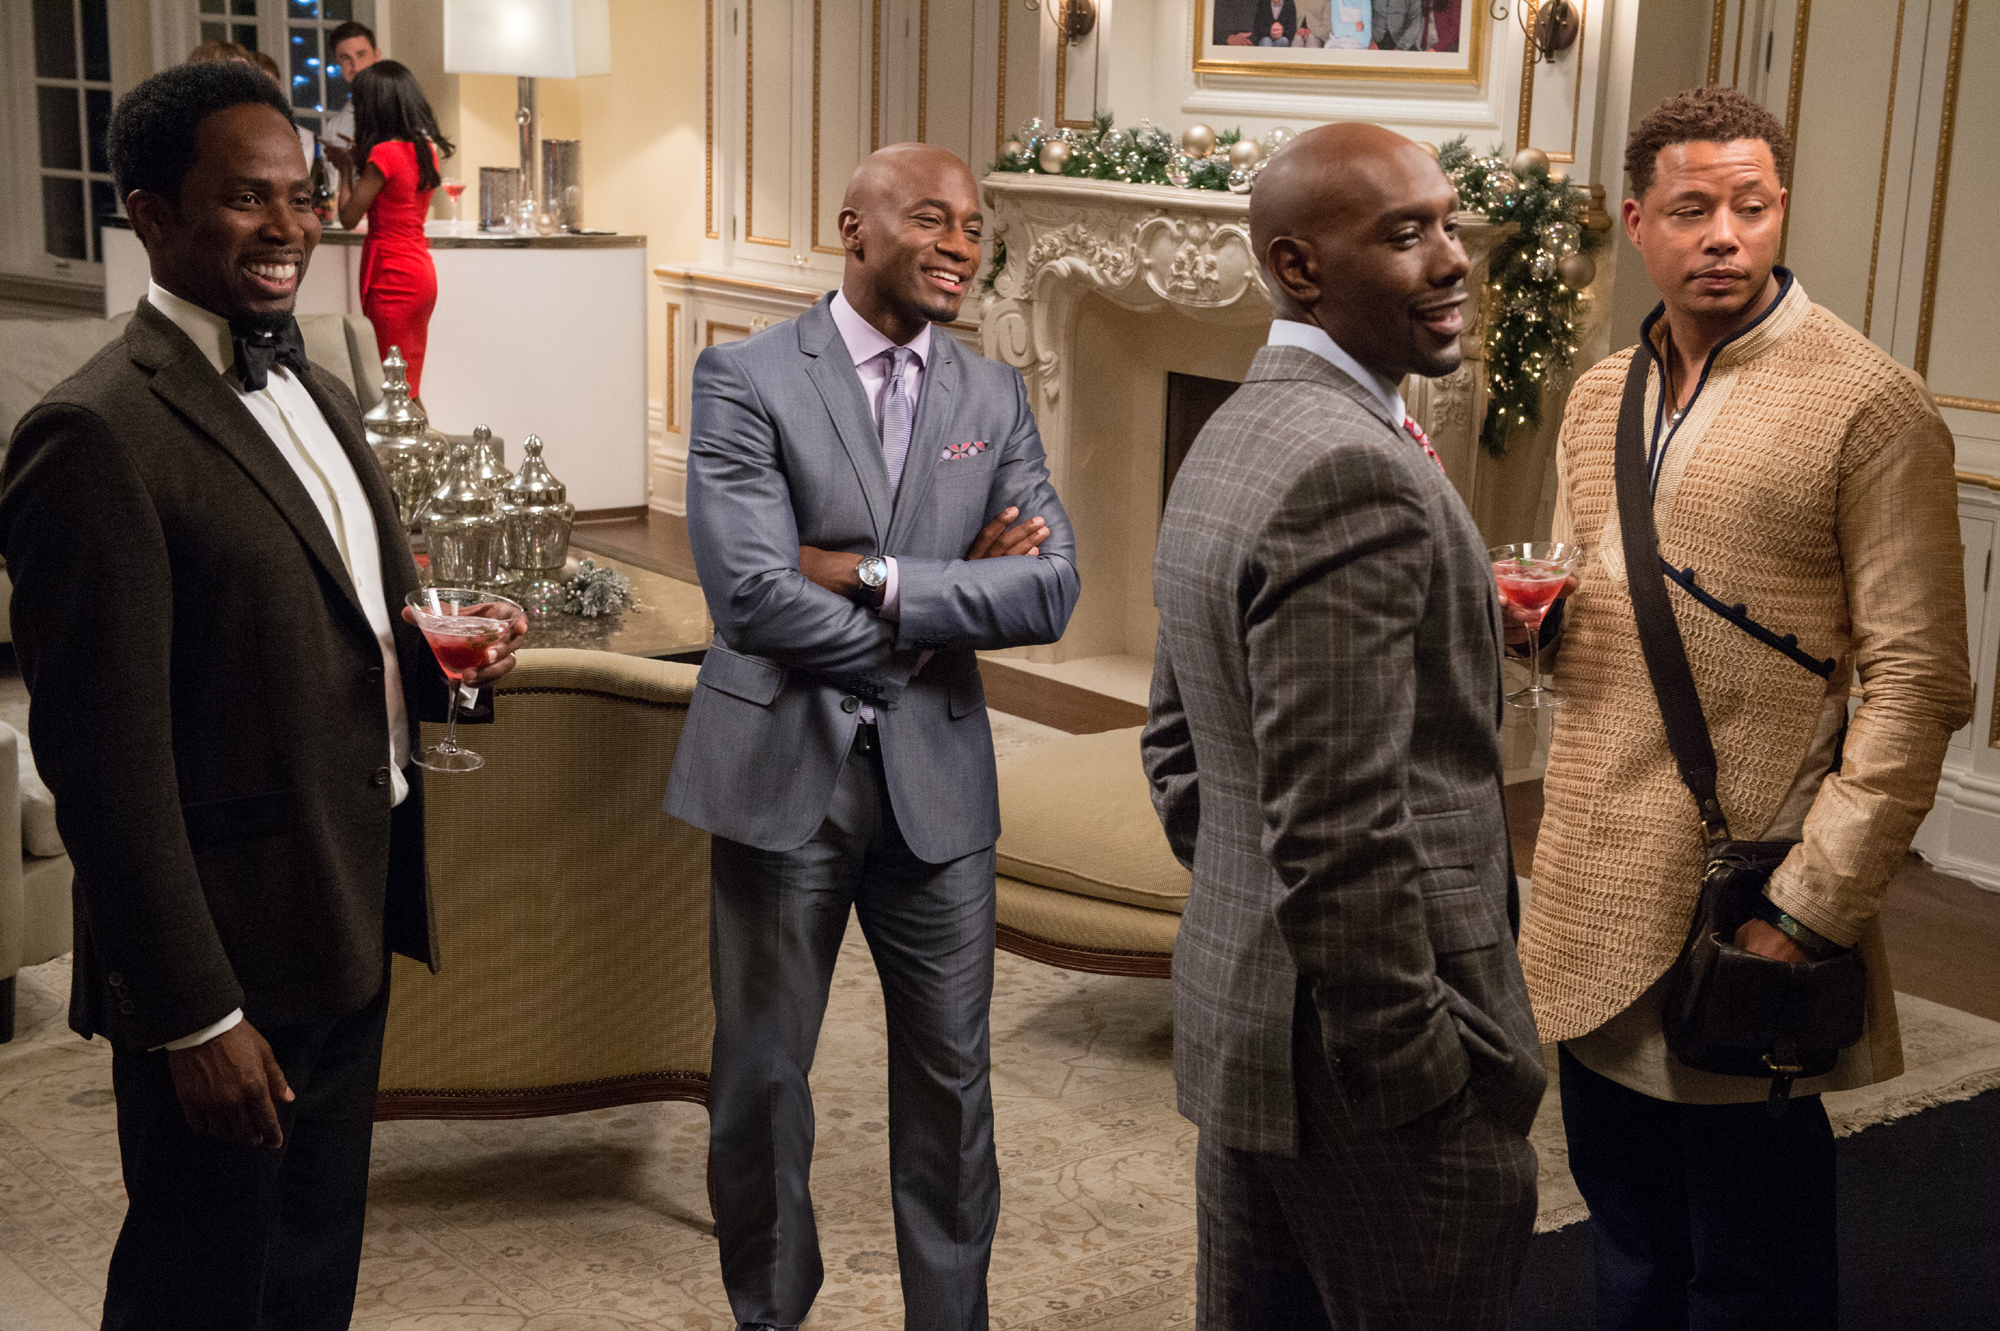 Best Man Holiday Review – This Is NOT A Spoiler